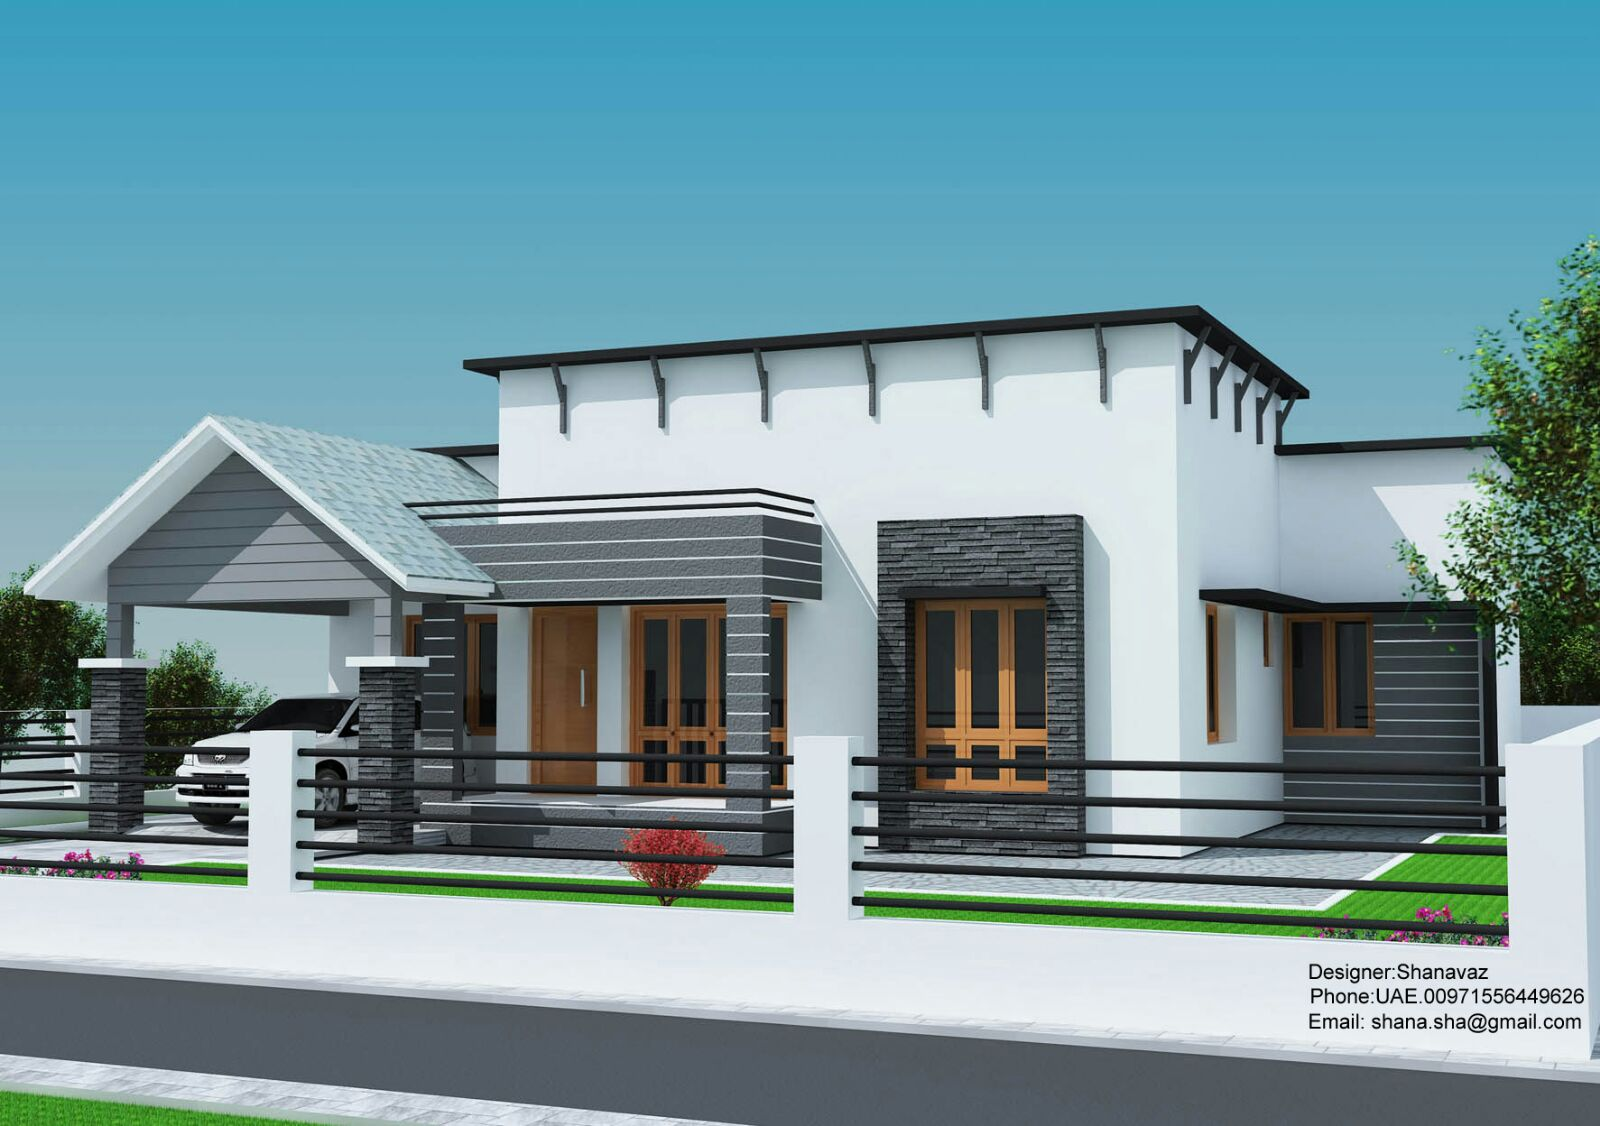 1300 sq ft single floor contemporary home design for Single floor house